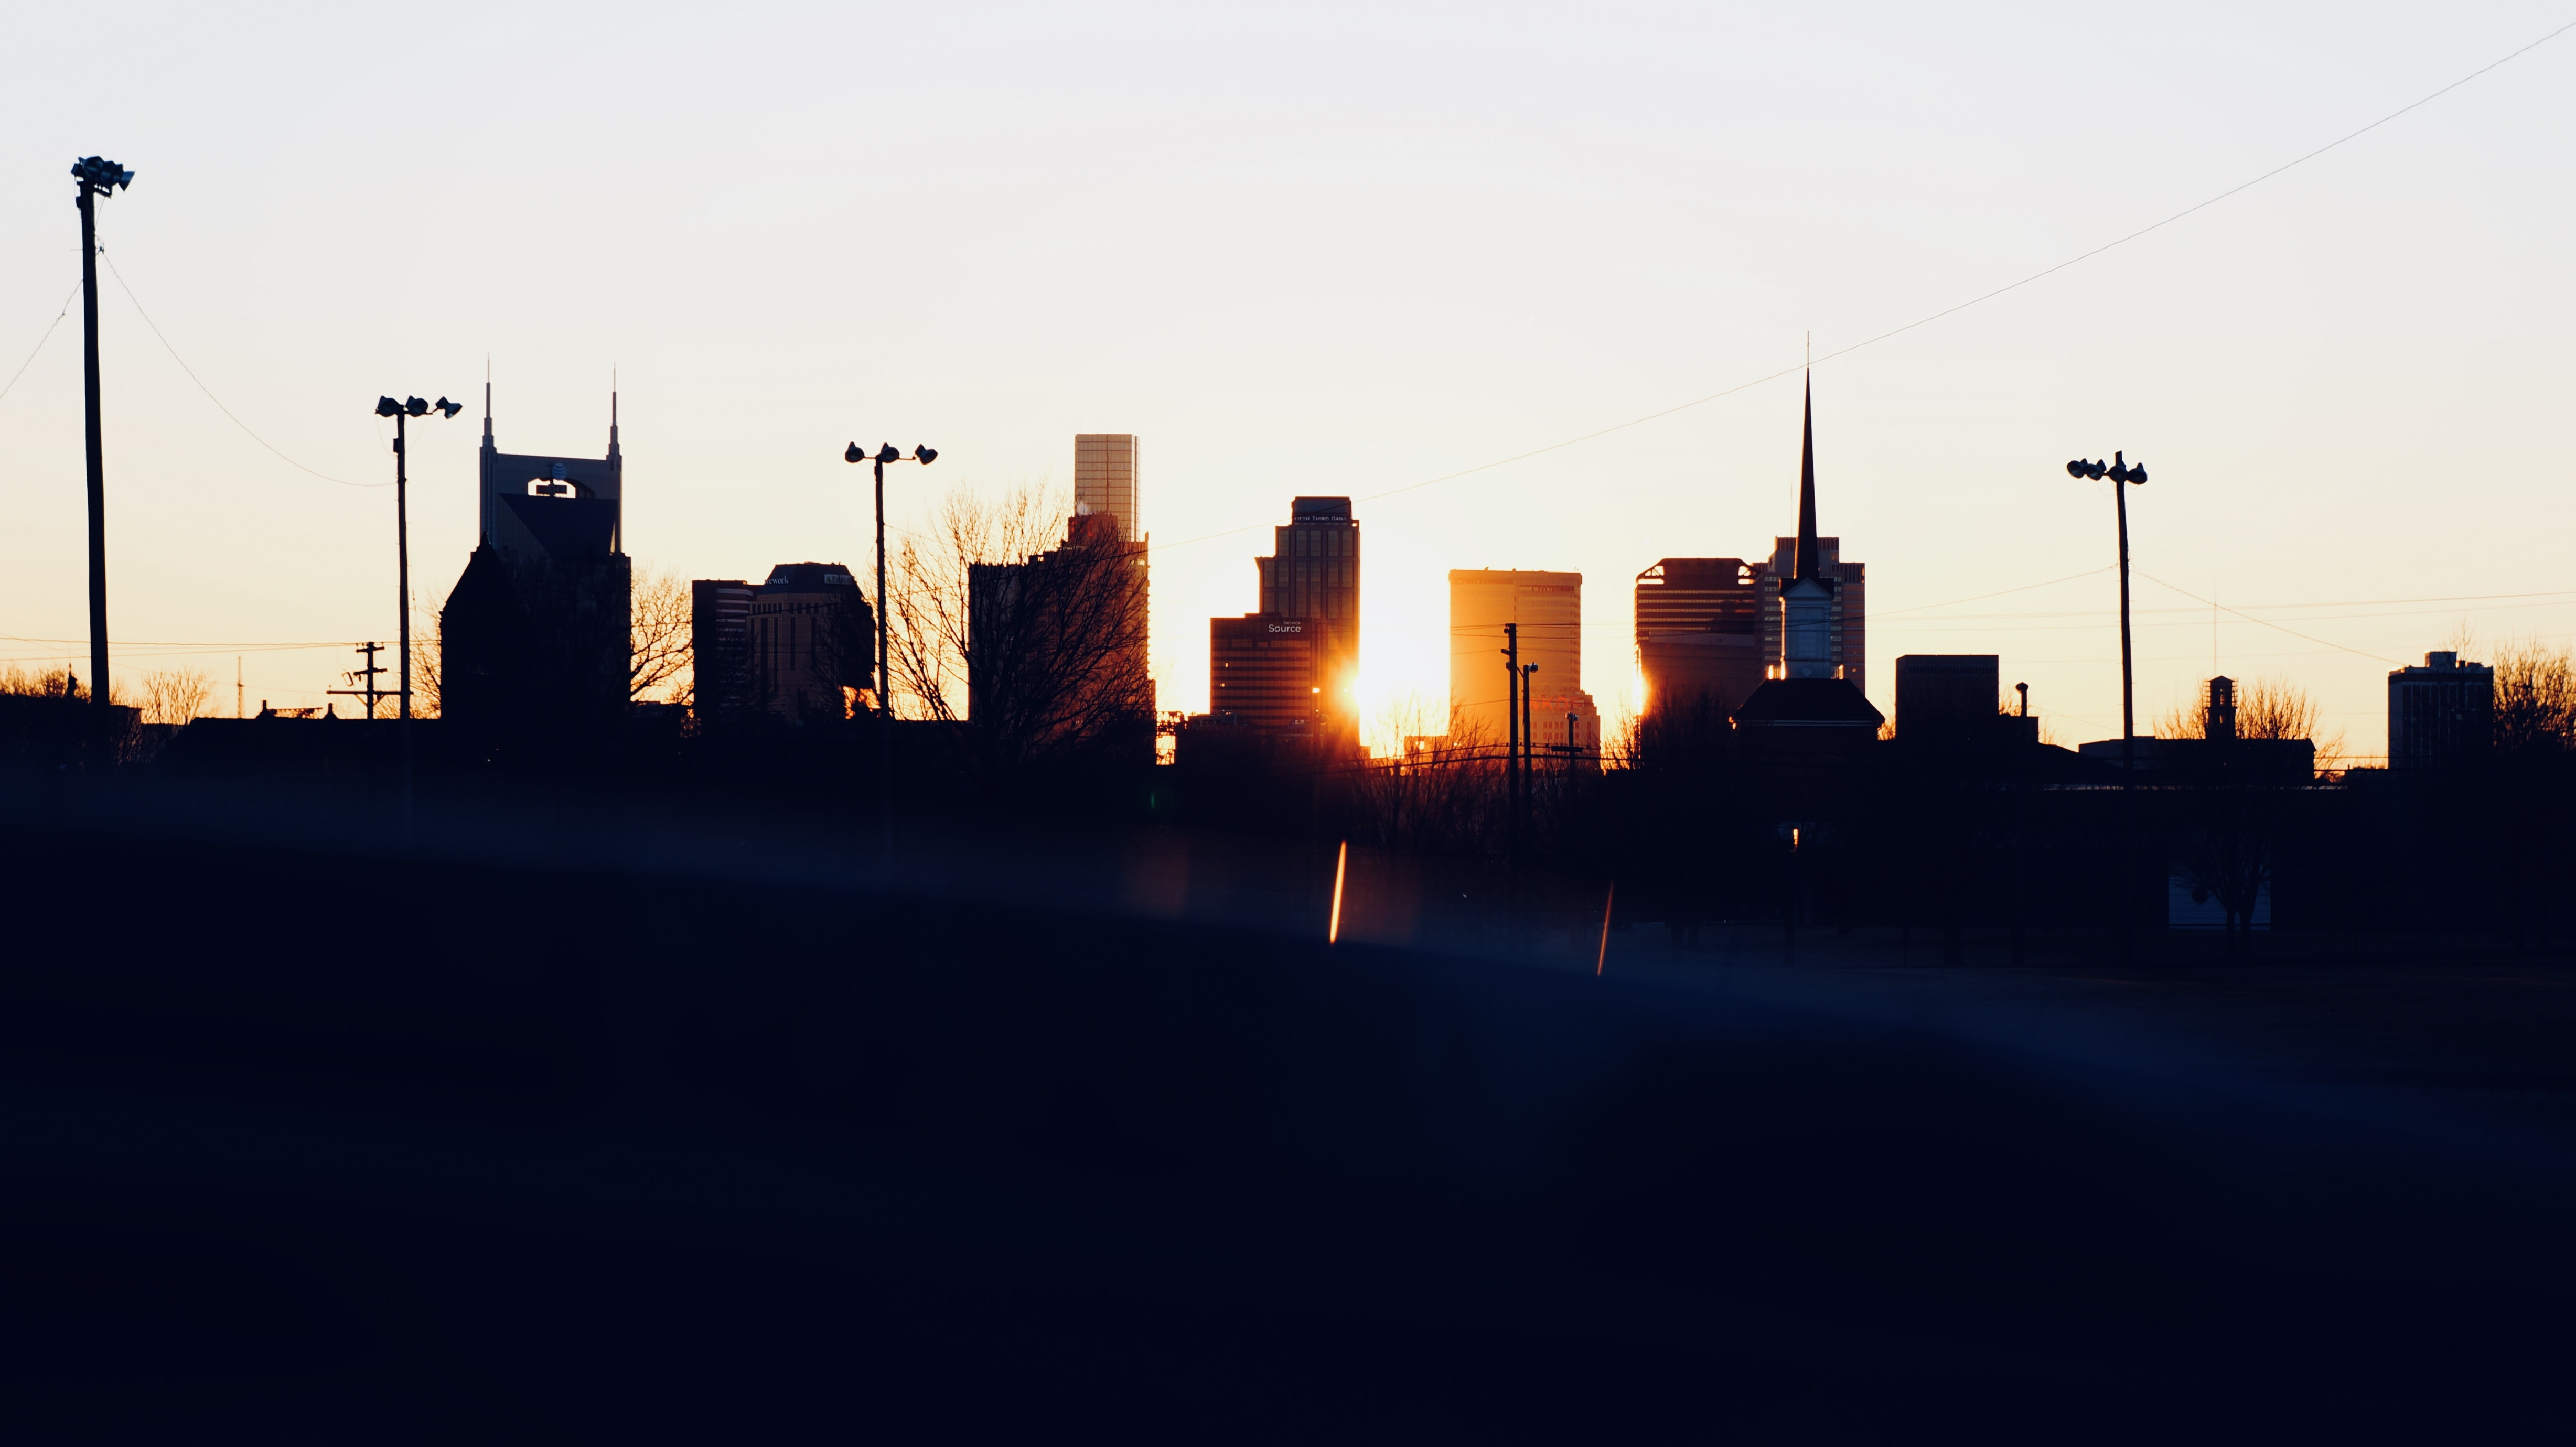 silhouette photo of city building during sunset